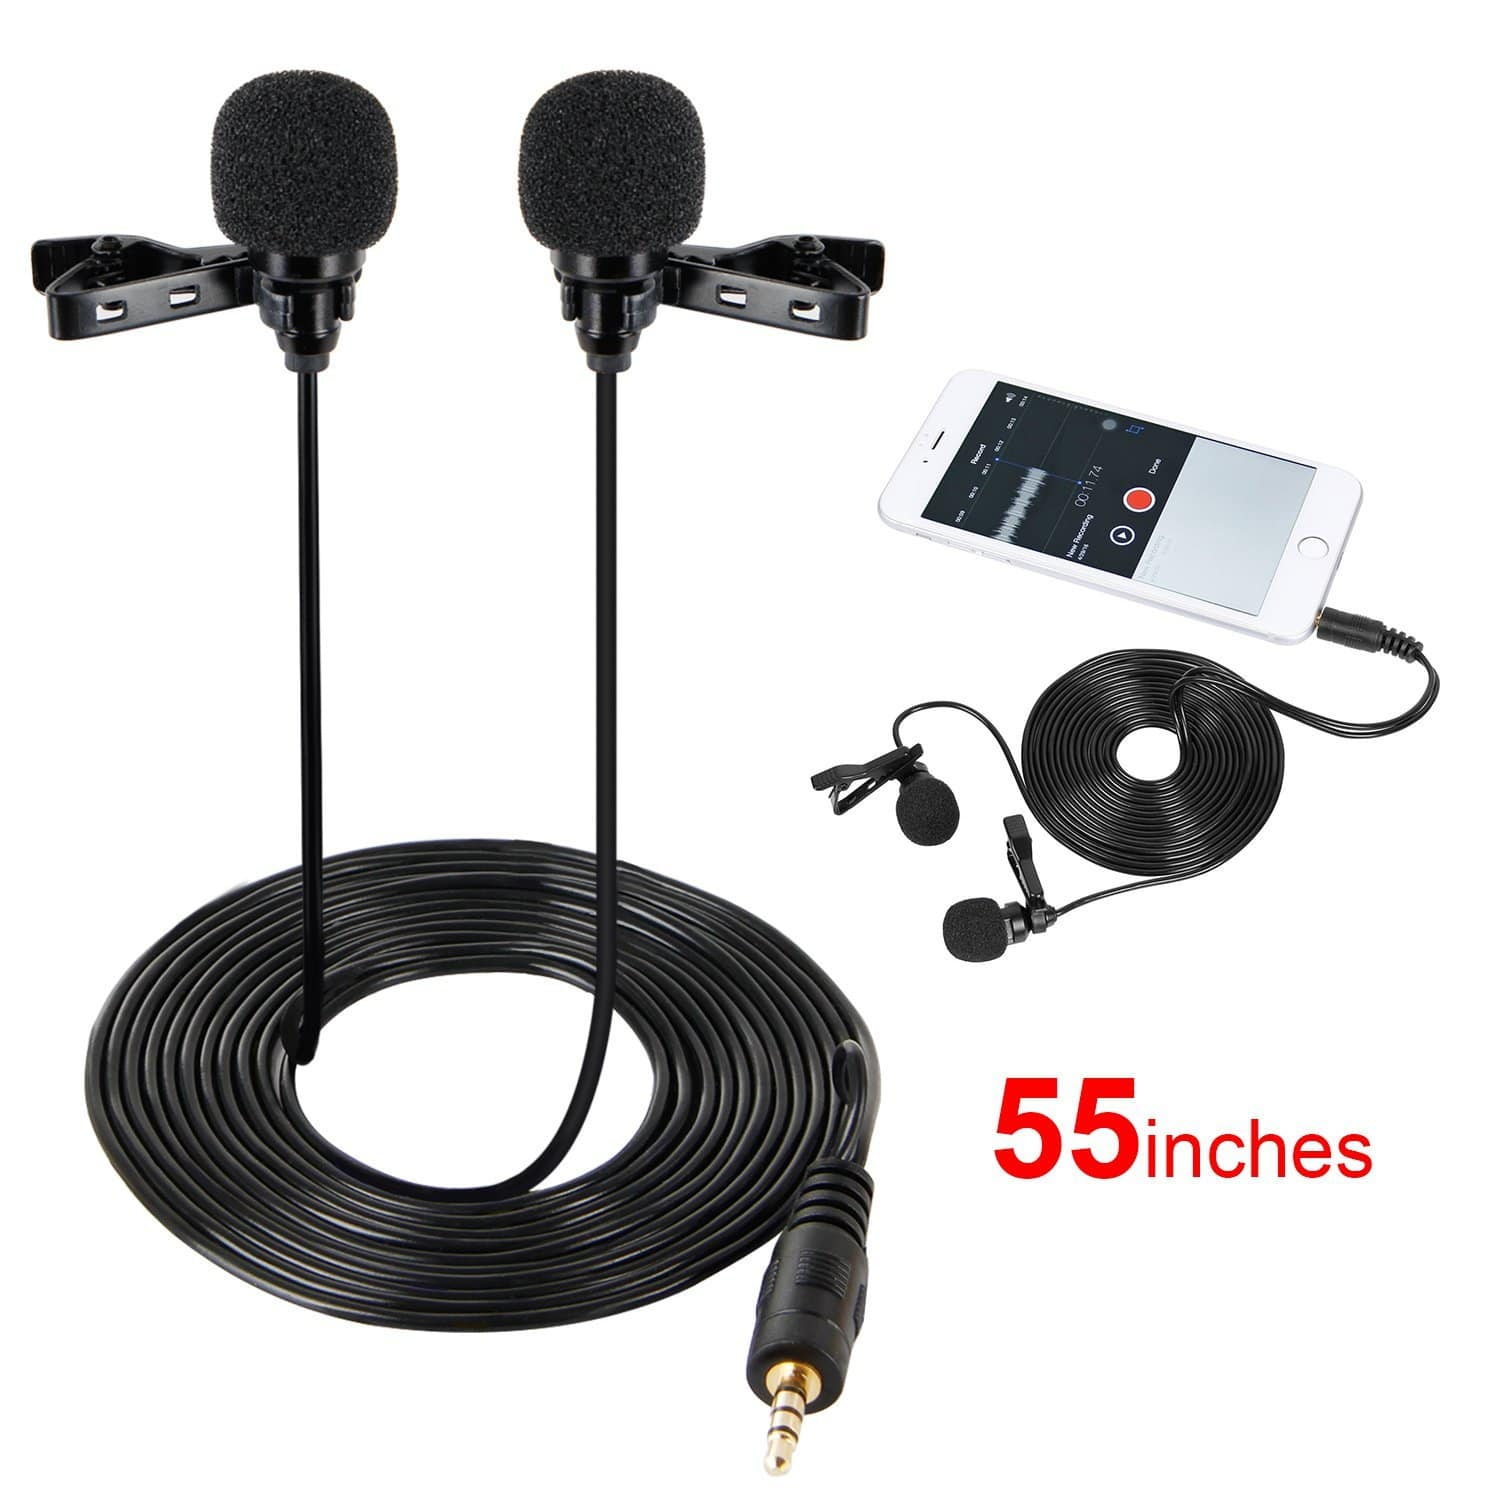 55 inch Lavalier Mic Lapel Microphone Double Headed Recording Clip On Mic Mini Microphone For Iphone Ipad Ipod Samsung Android and Windows Smartphones $8.5